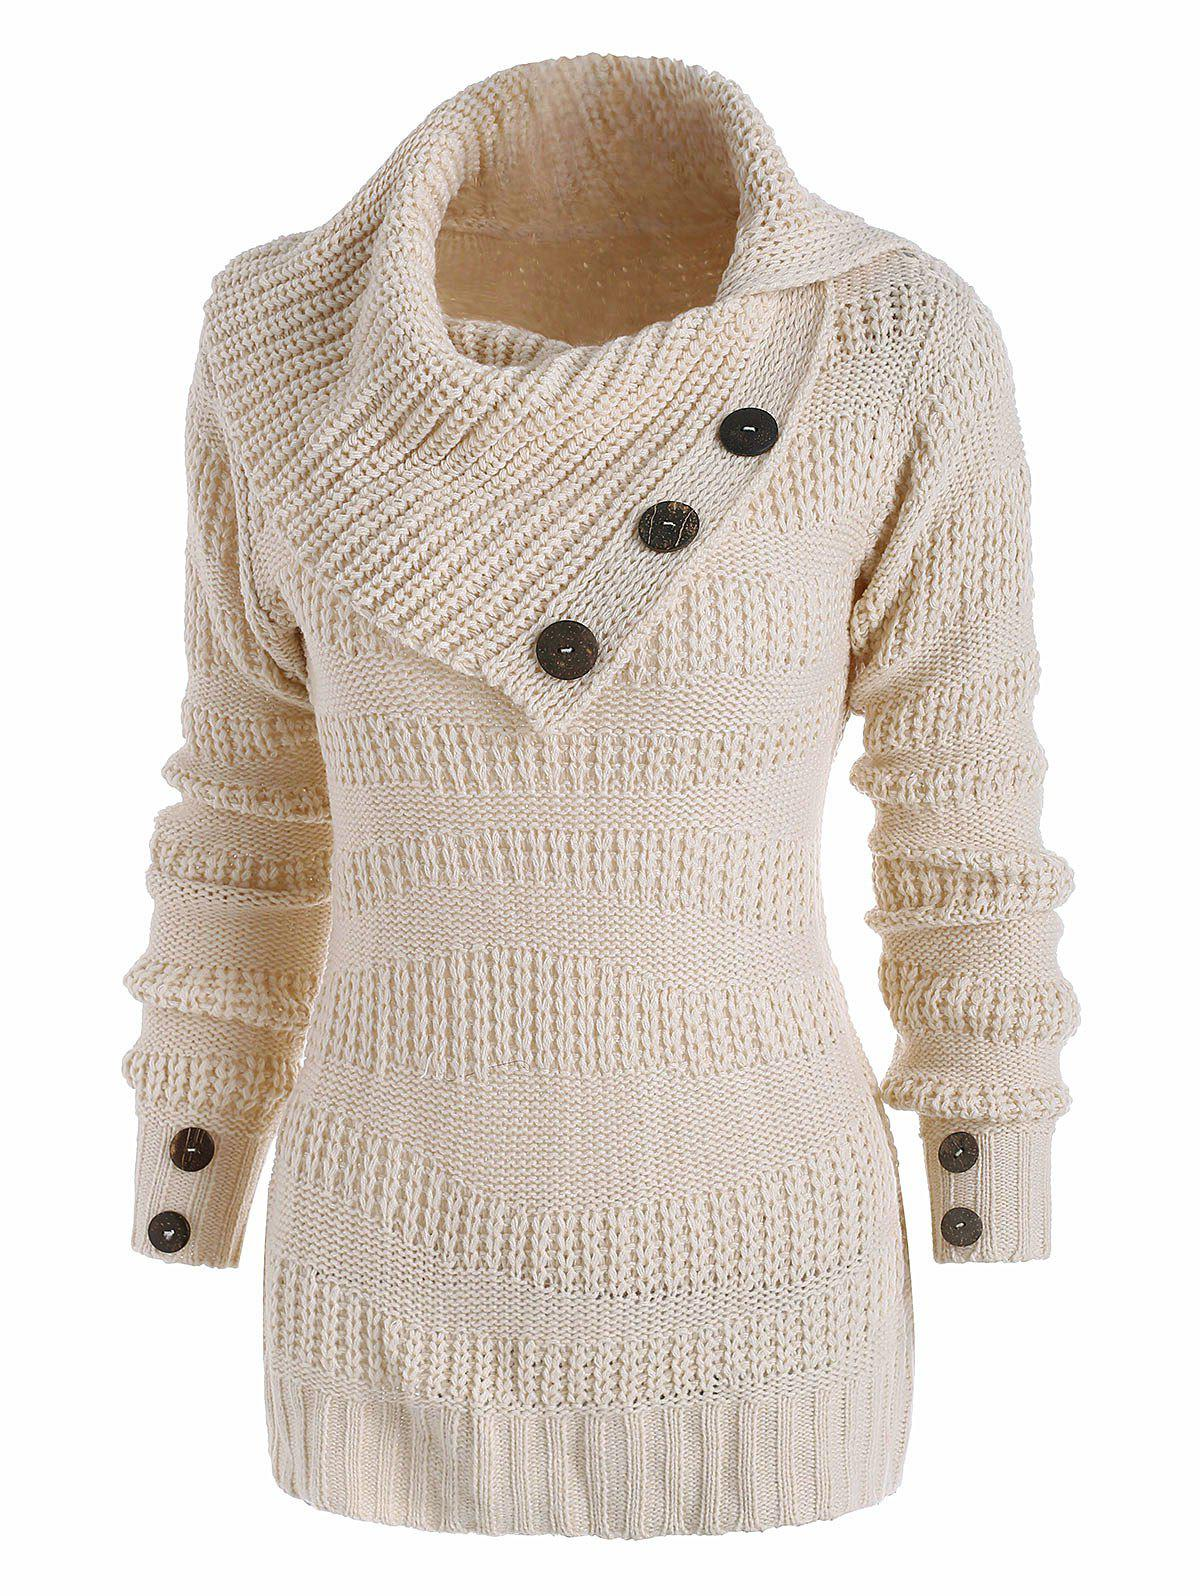 Mix Knit Irregular Turn Down Collar Mock Button Sweater - WHITE S